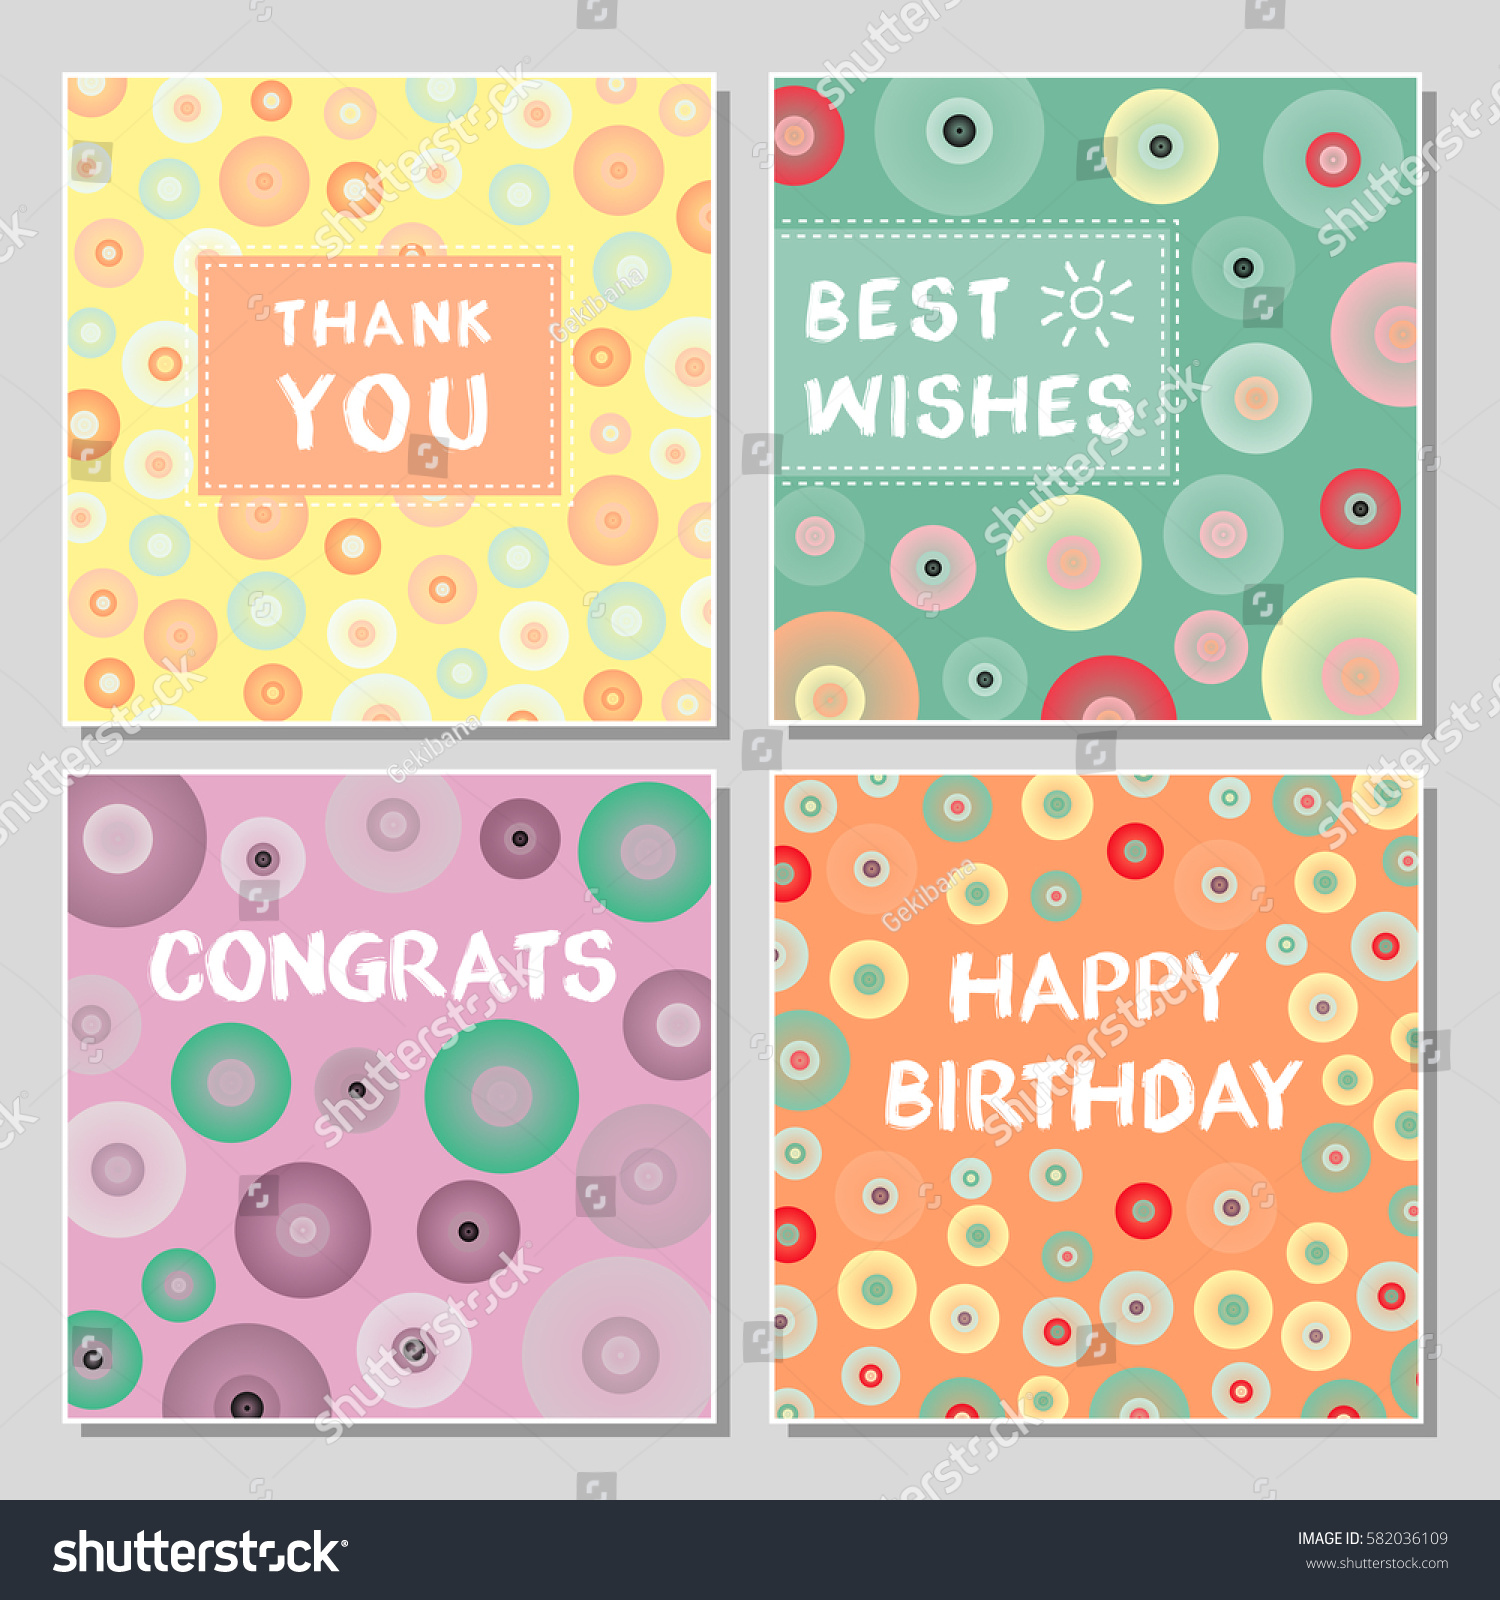 Wedding Thank You Cards With Po | Set Funny Greeting Cards Abstract Geometrical Stock Vector Royalty